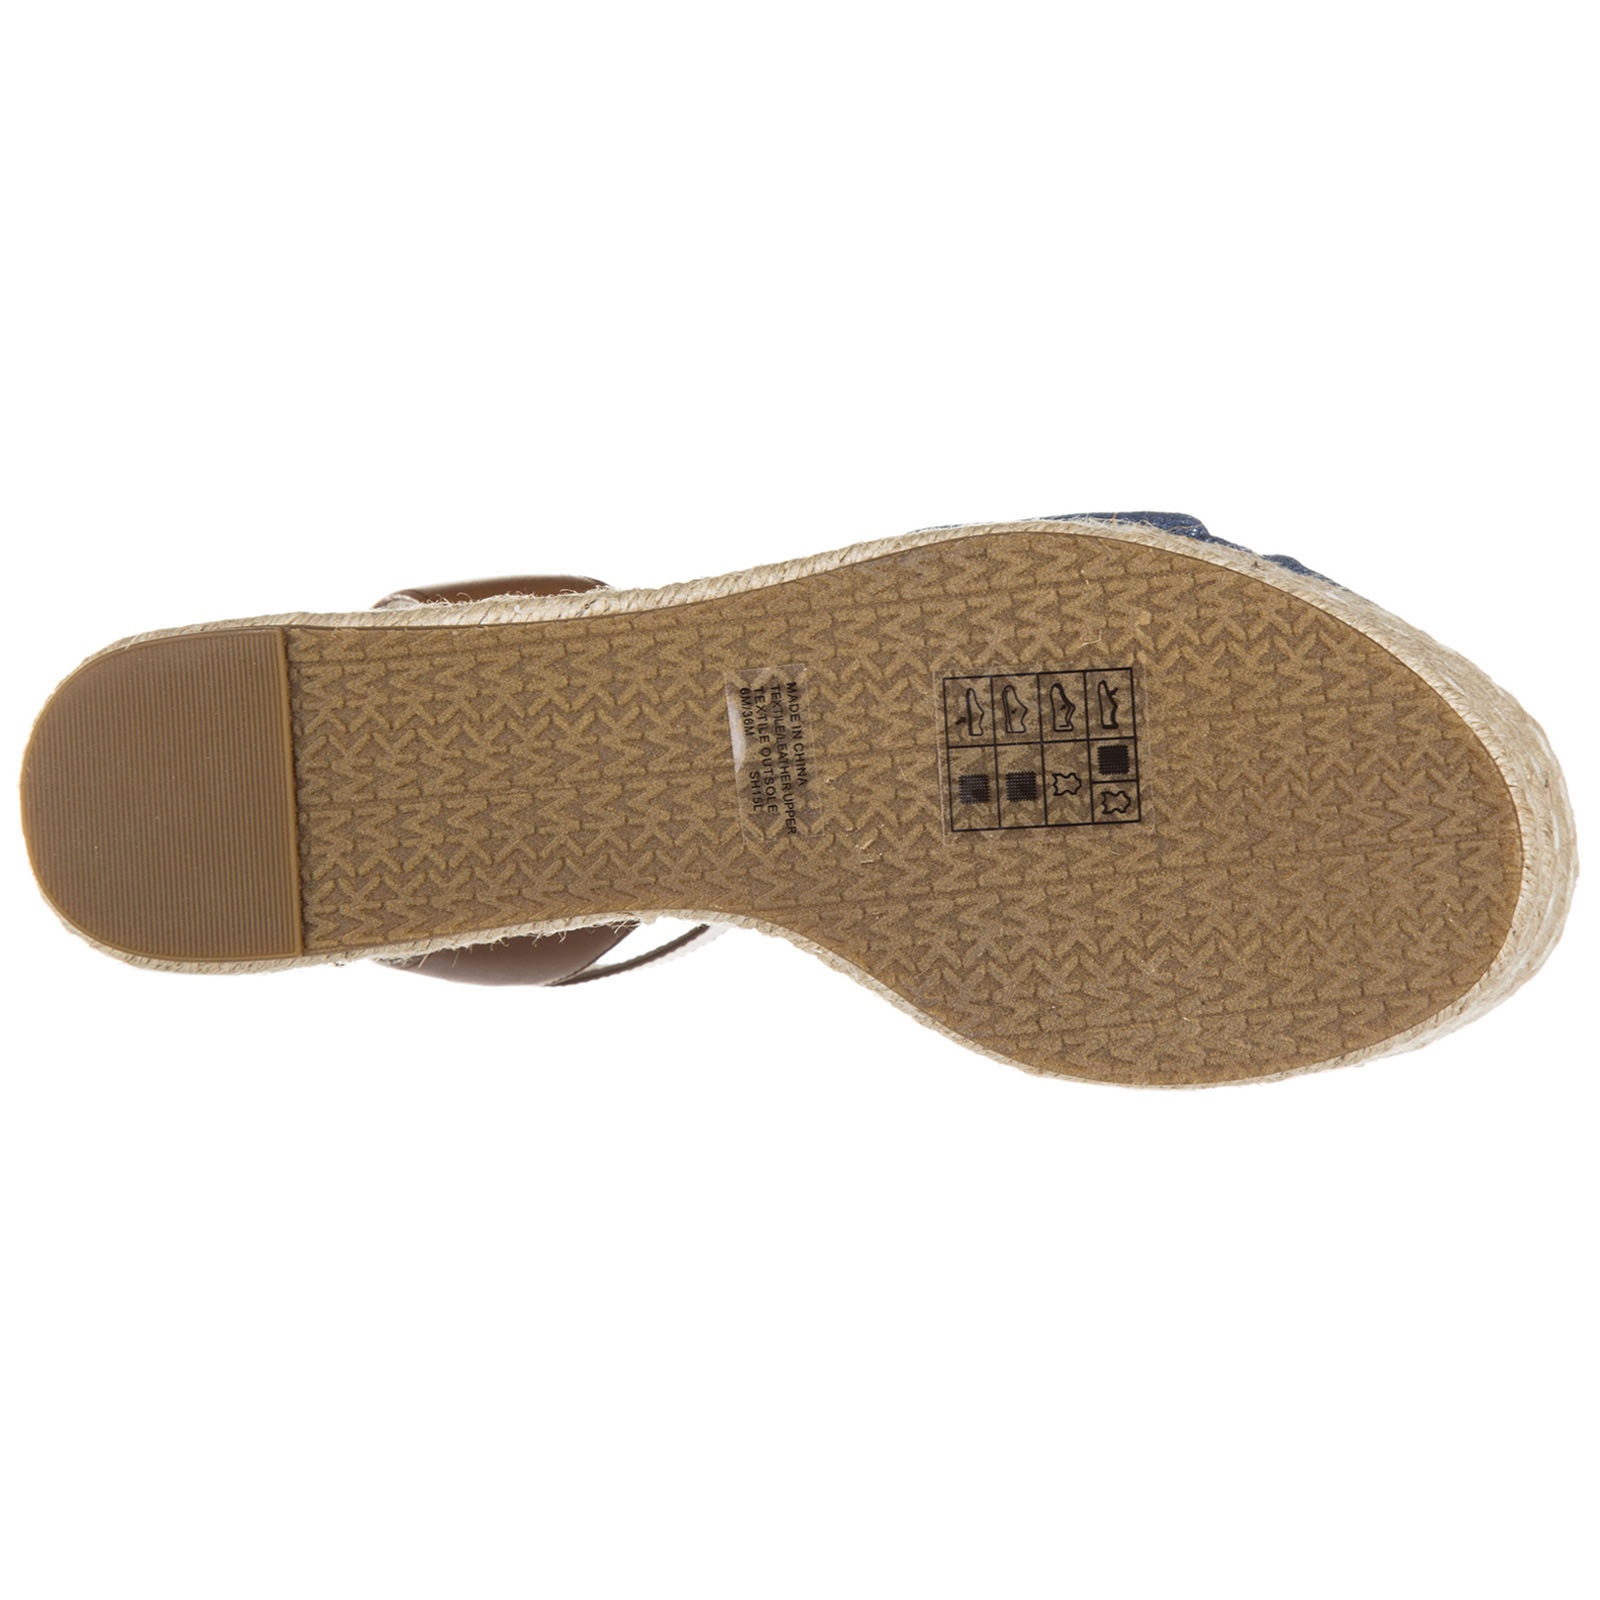 Zeppe sandali donna in cotone maxwell mid